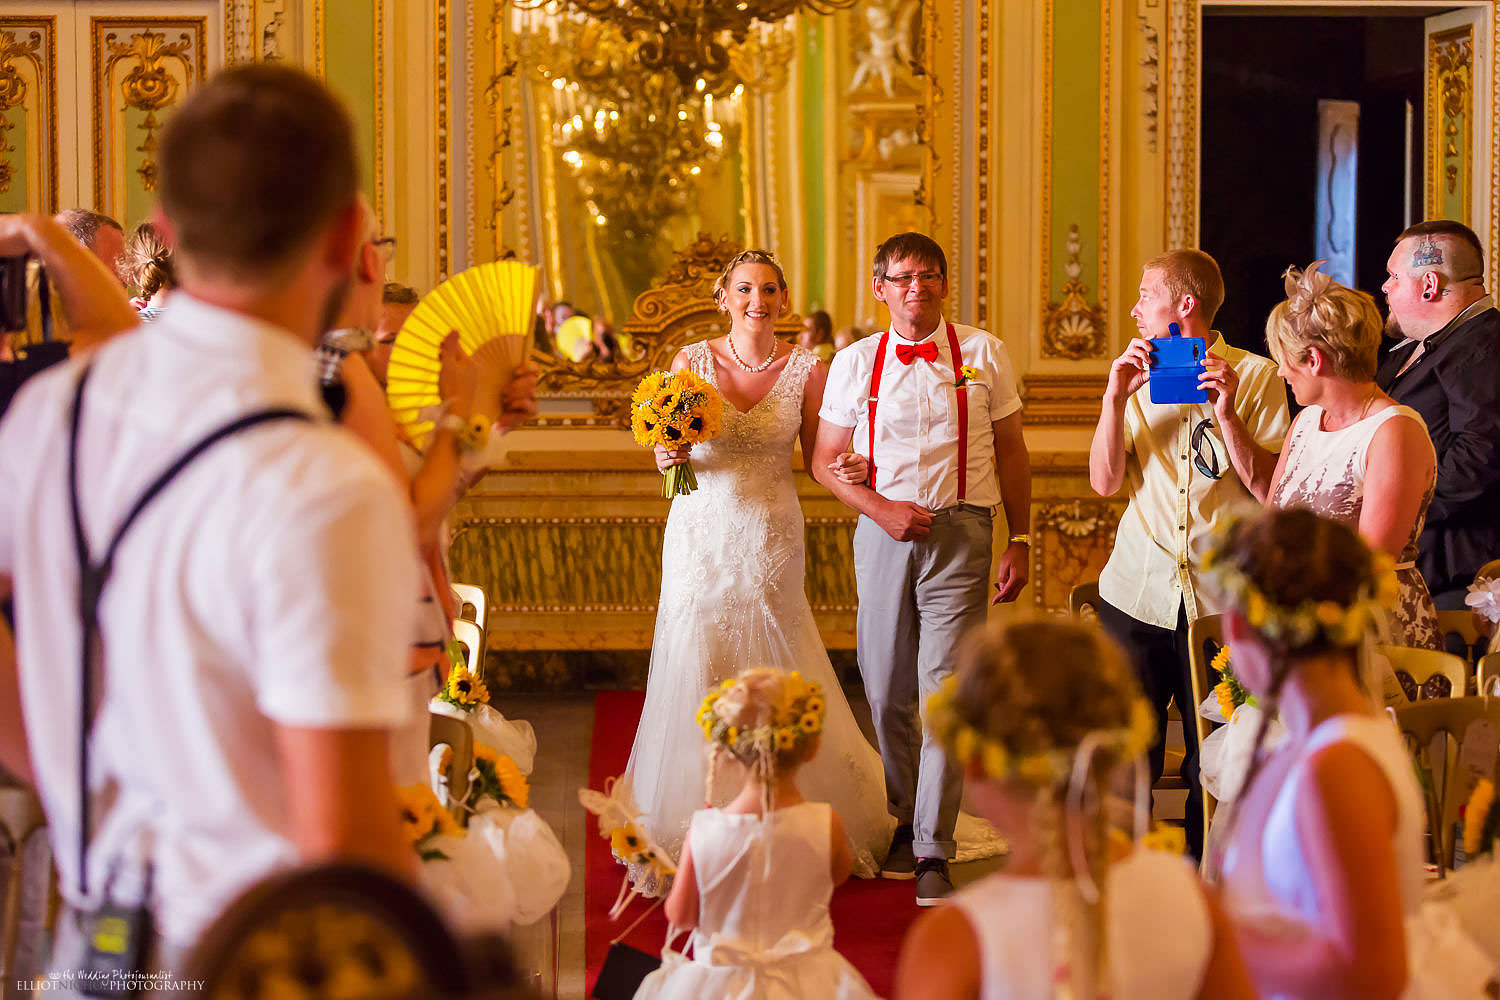 Bride and her father walk down the aisle in the golden Ballroom of the Palazzo Parisio to the wedding ceremony.